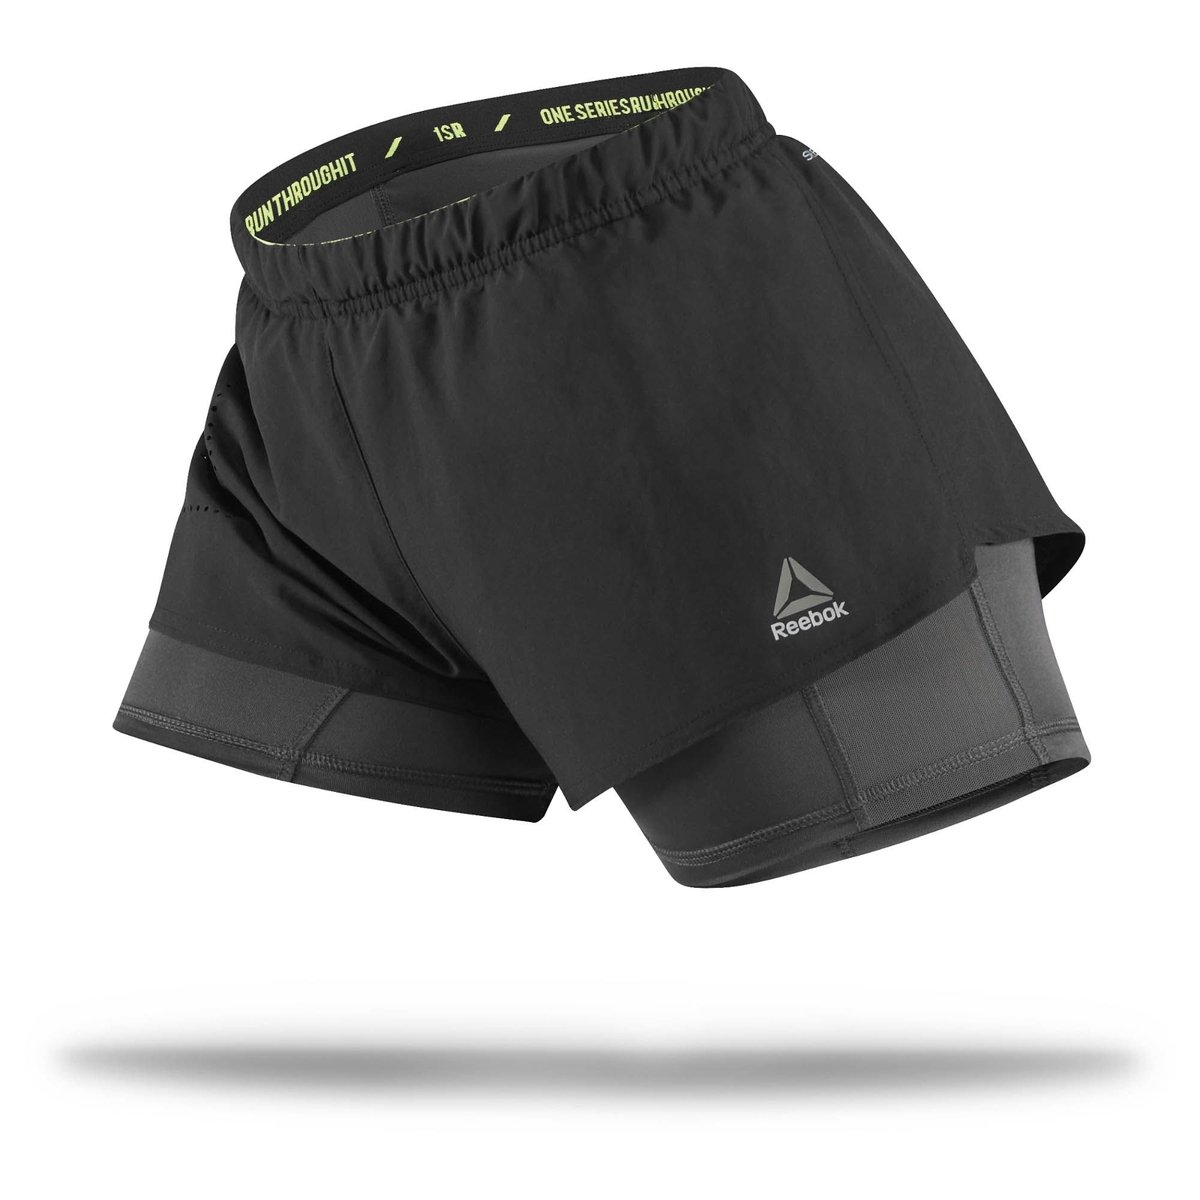 Reebok 2In1 Short Series Preto One Short Reebok gqFwxUXE